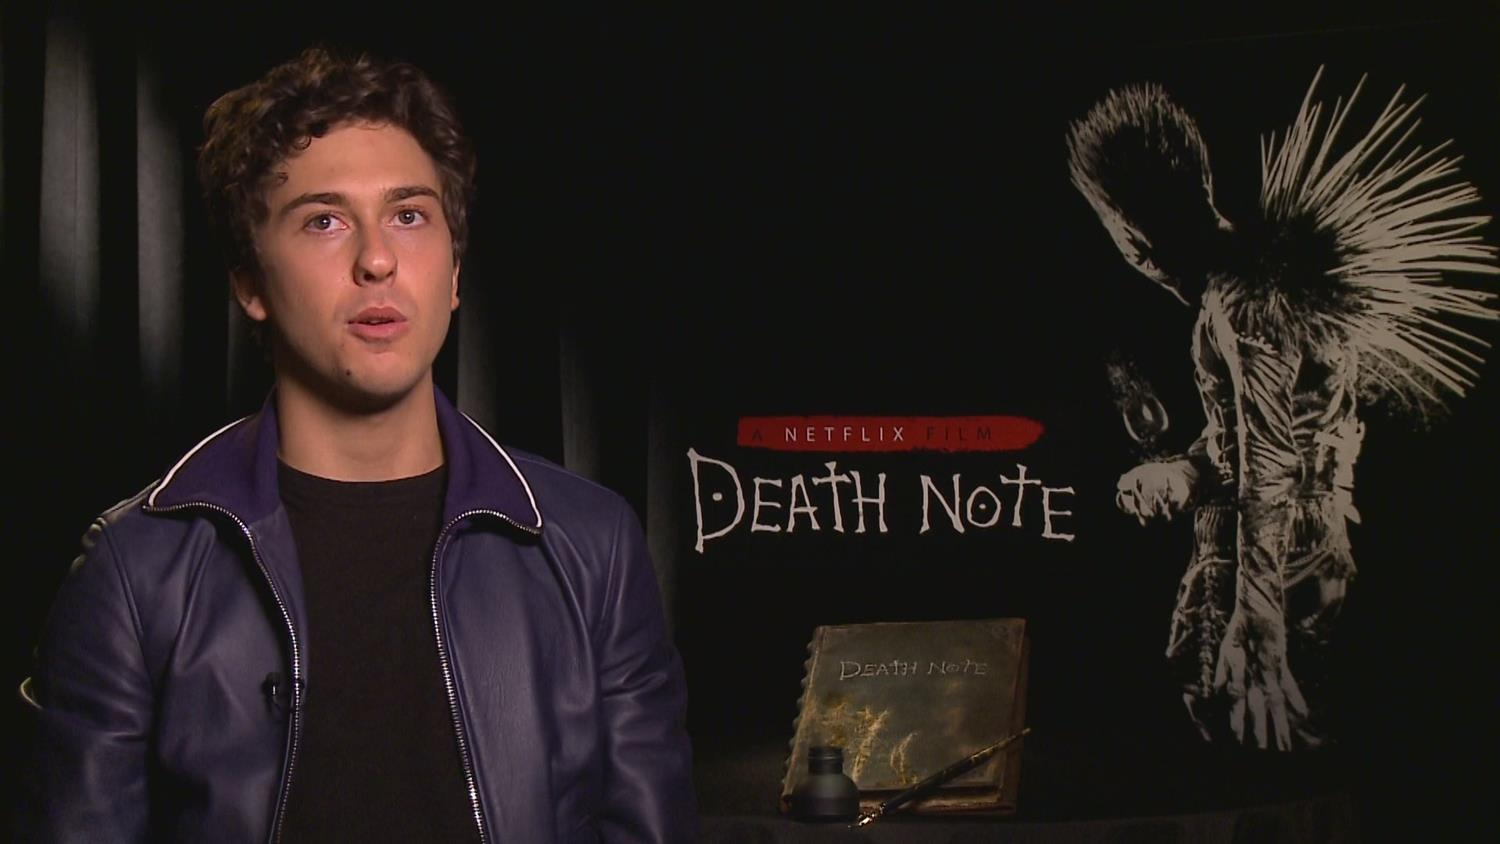 Death Note's Nat Wolff on Peer Pressure to Sign The Death Note